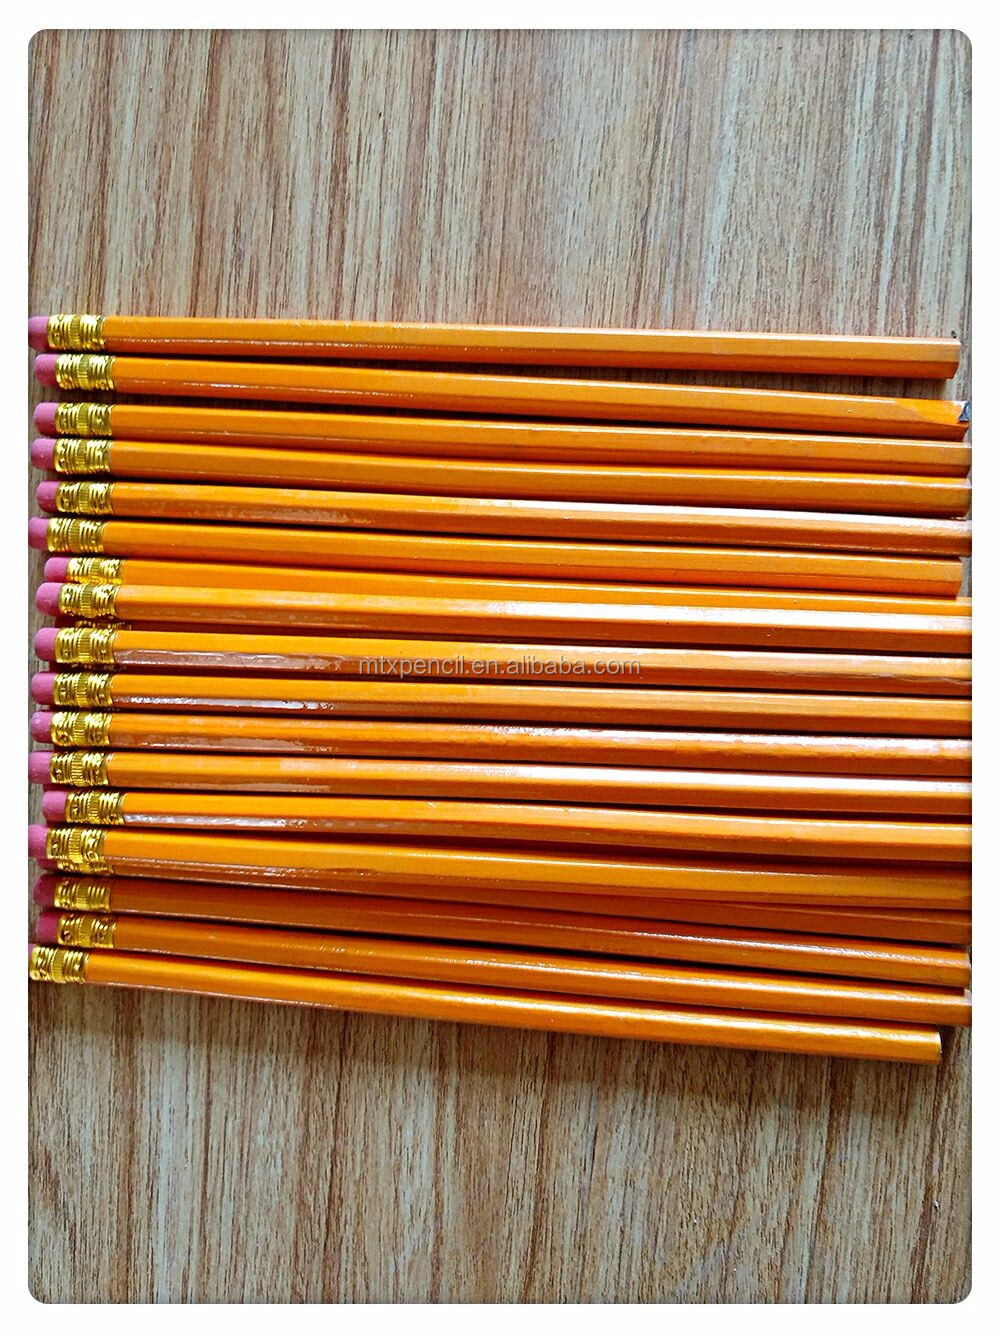 school The office cheap wholesale yellow wooden pencil with eraser